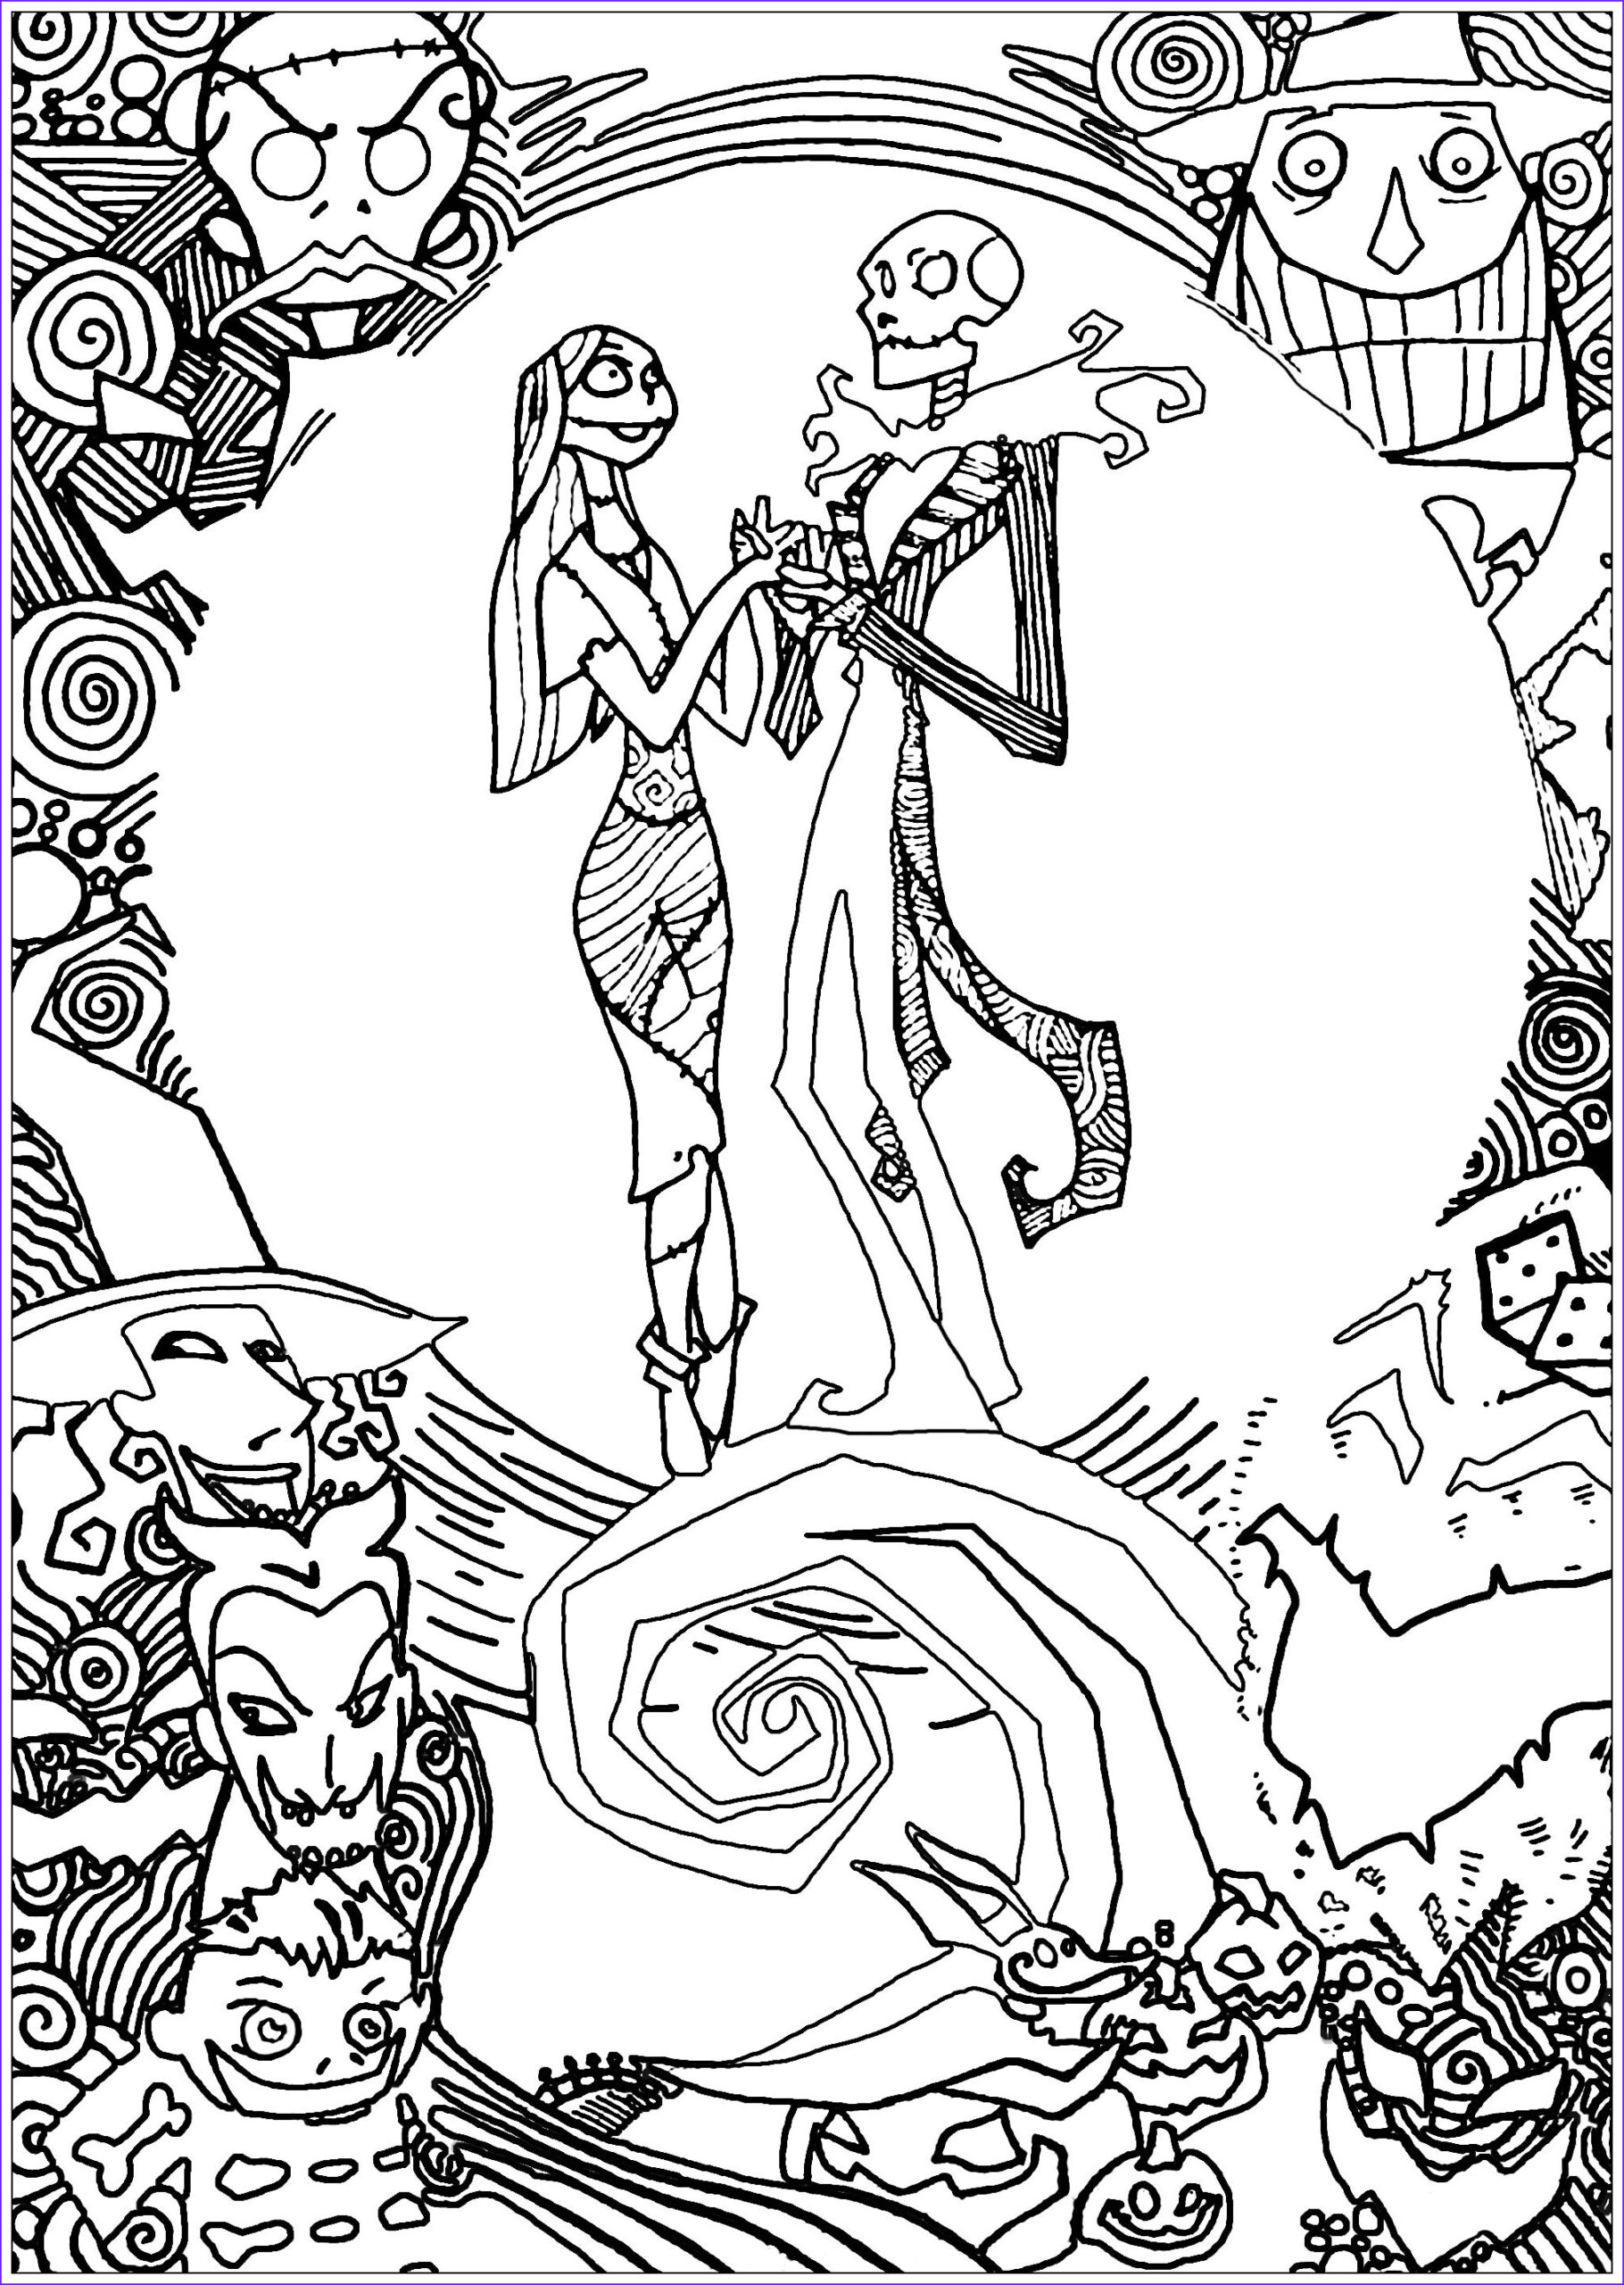 Nightmare before Christmas Coloring Pages Elegant Stock Nighmare before Christmas with Sully Christmas Adult